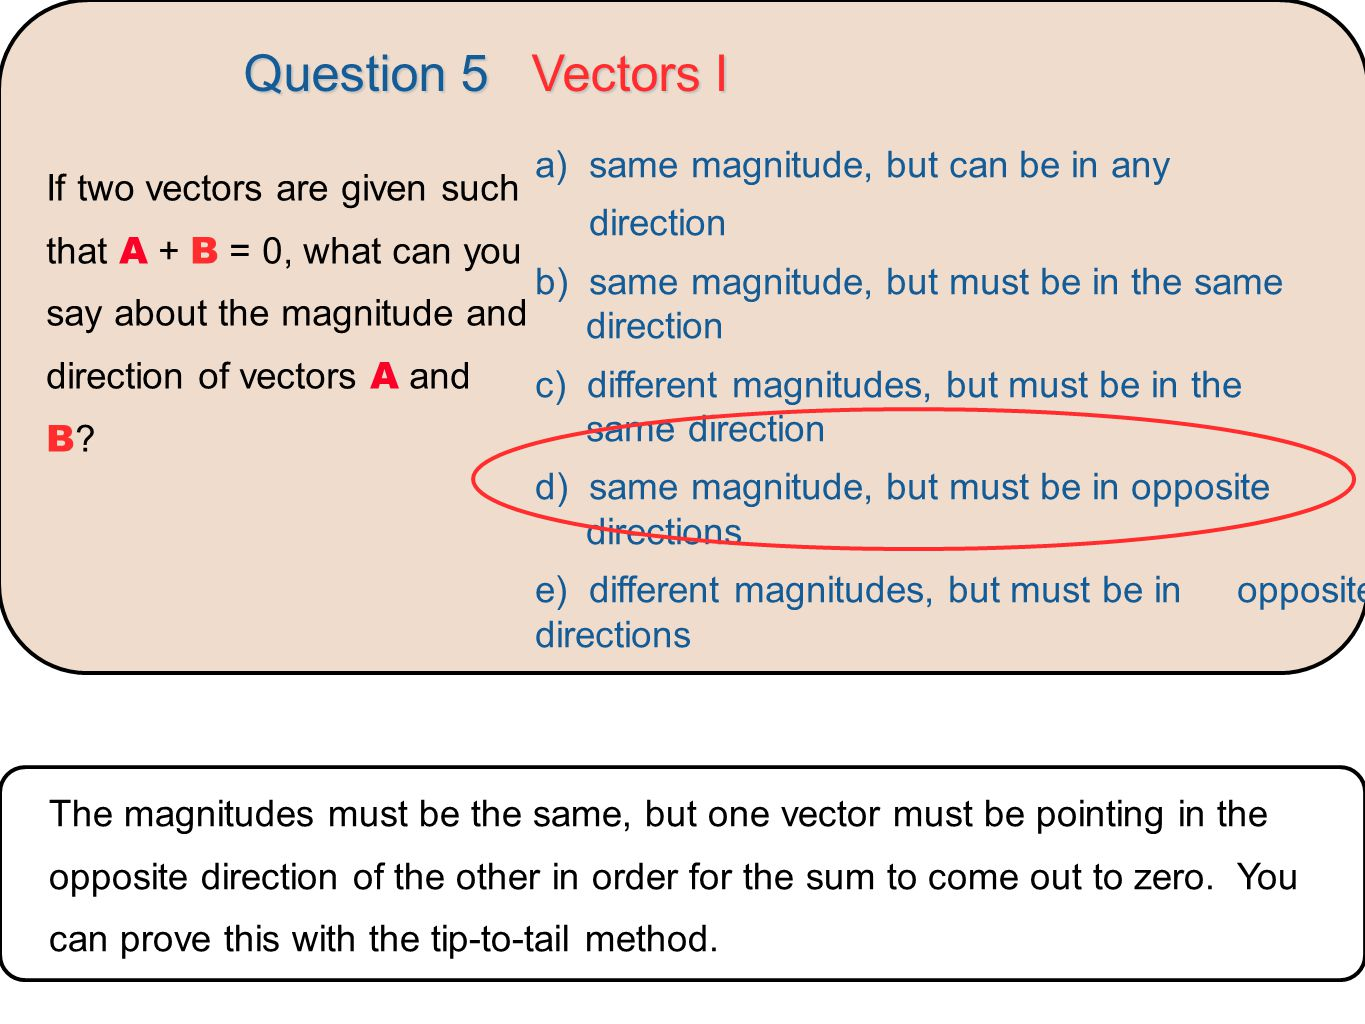 Question 5 Vectors I a) same magnitude, but can be in any